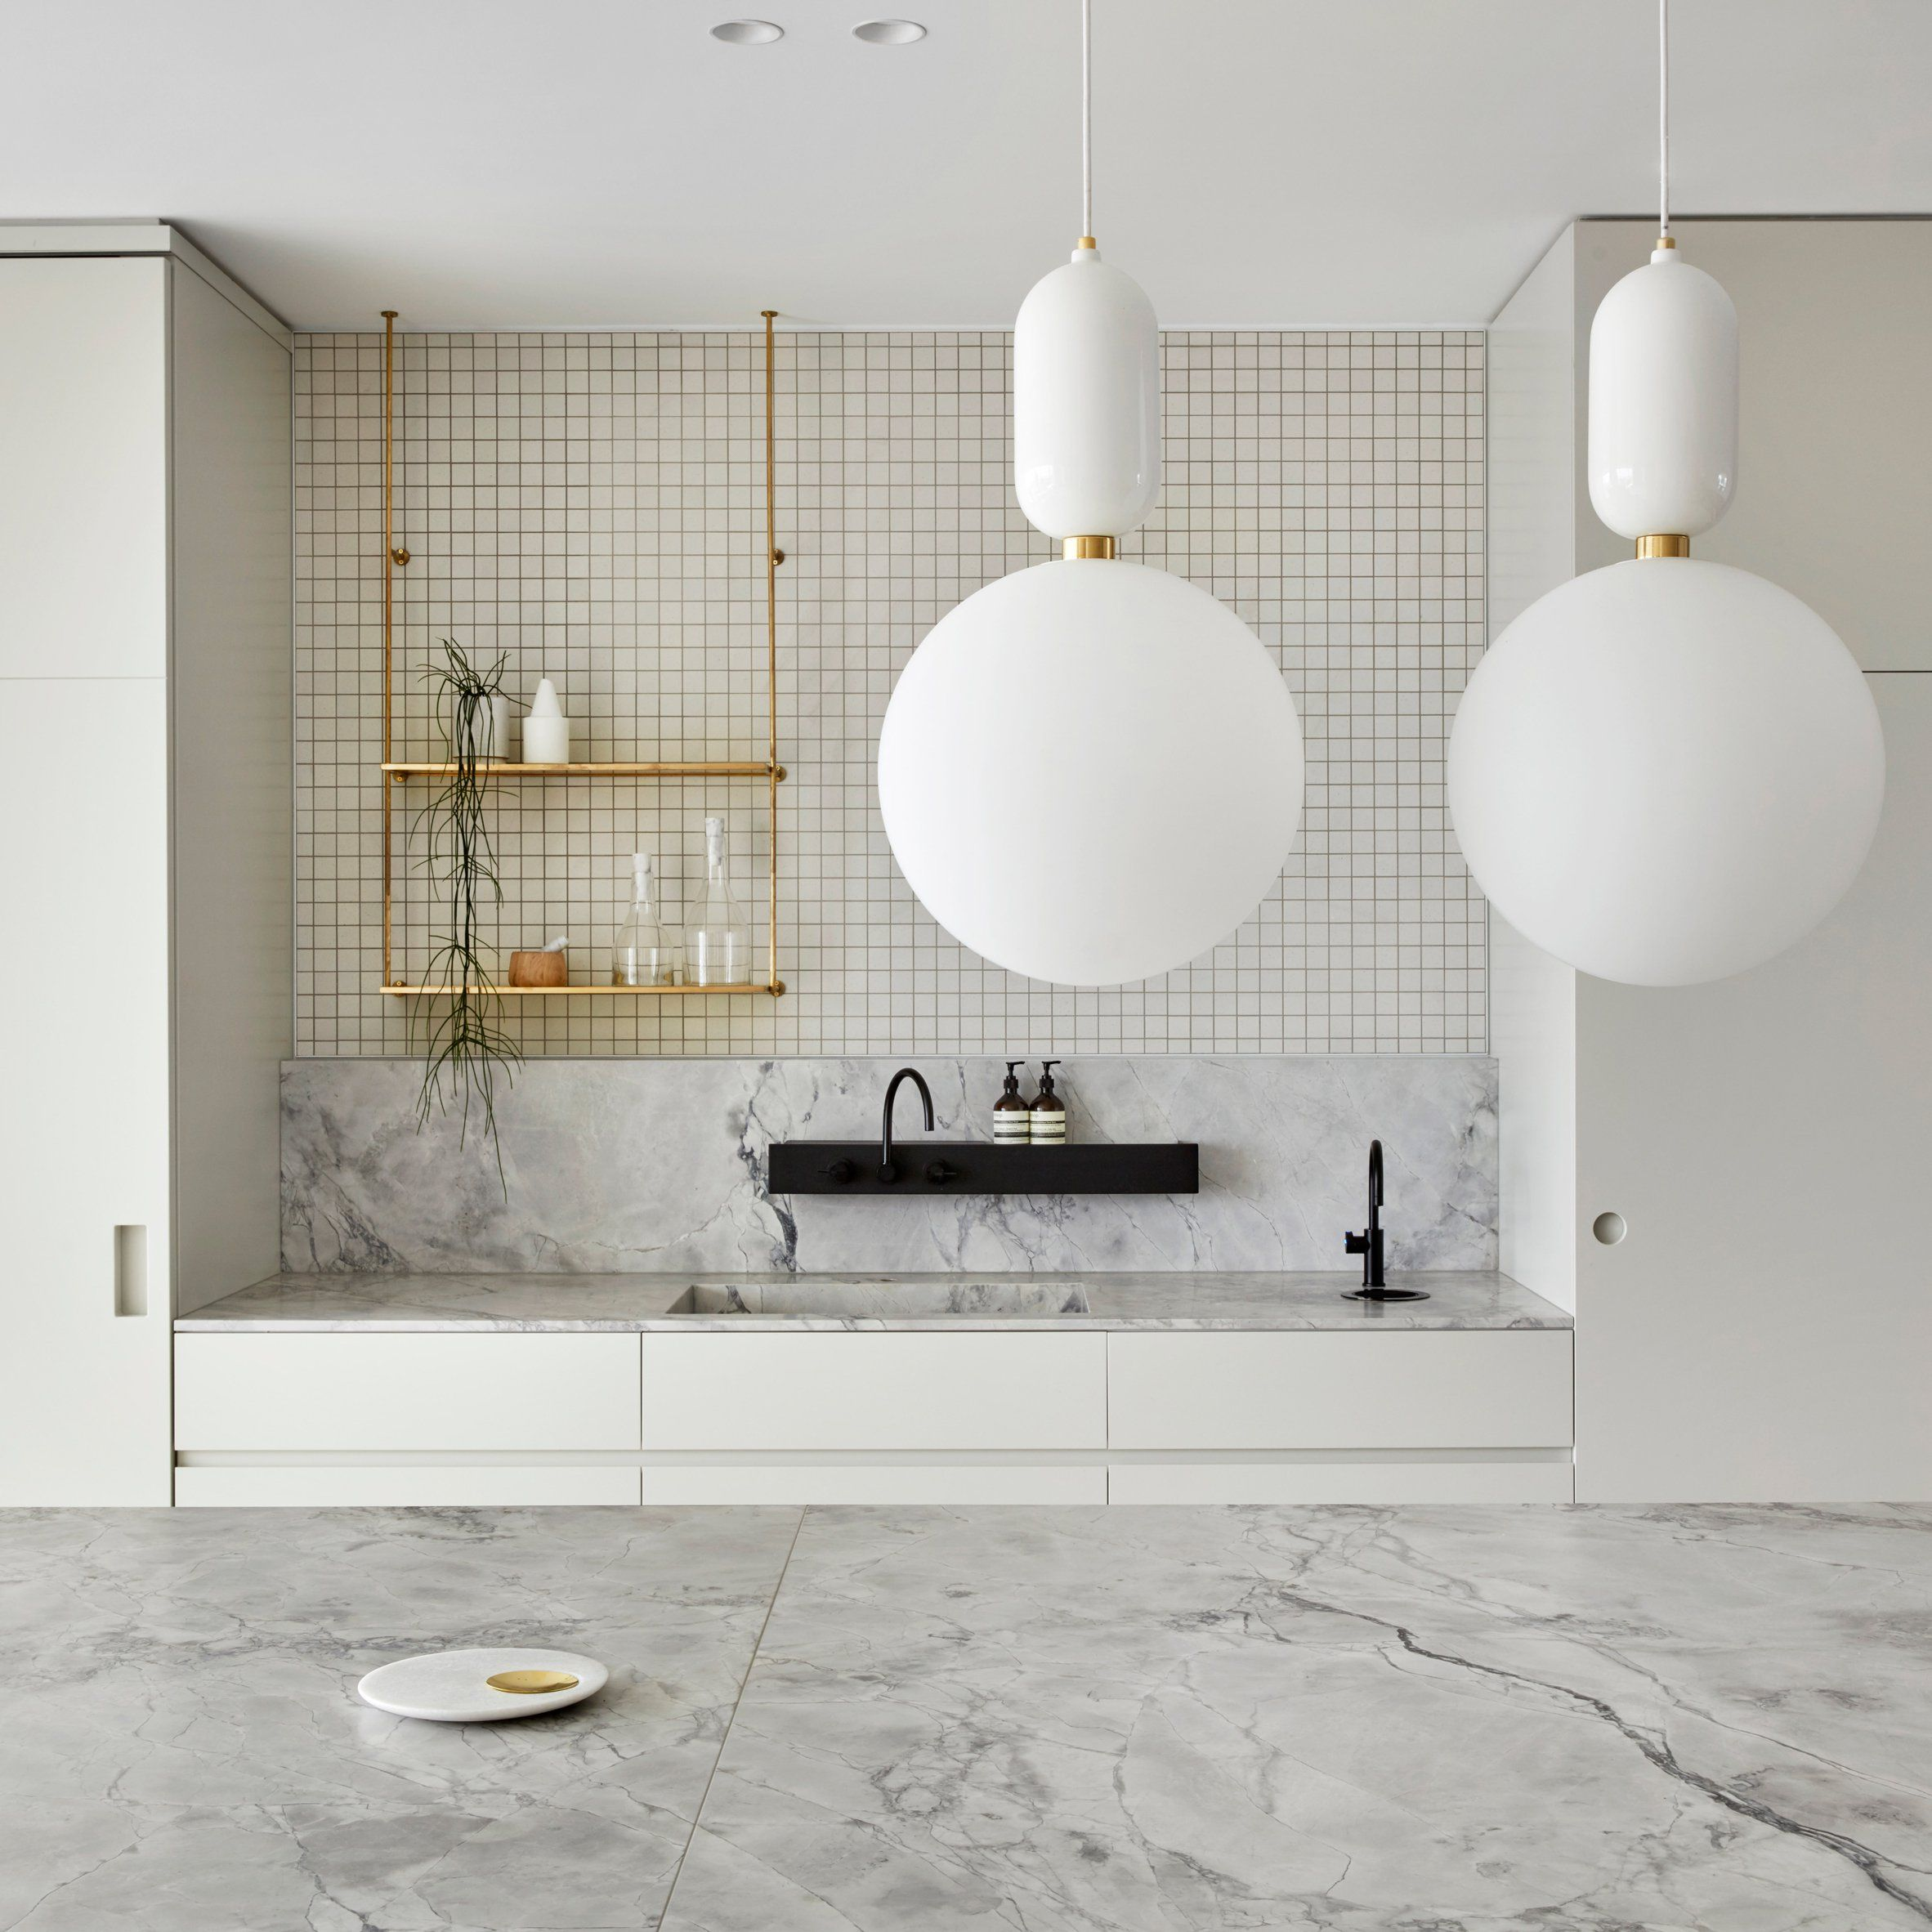 Melbourne Interior Design Studio The Stella Collective Has Designed This Sydney Office To Resemble A